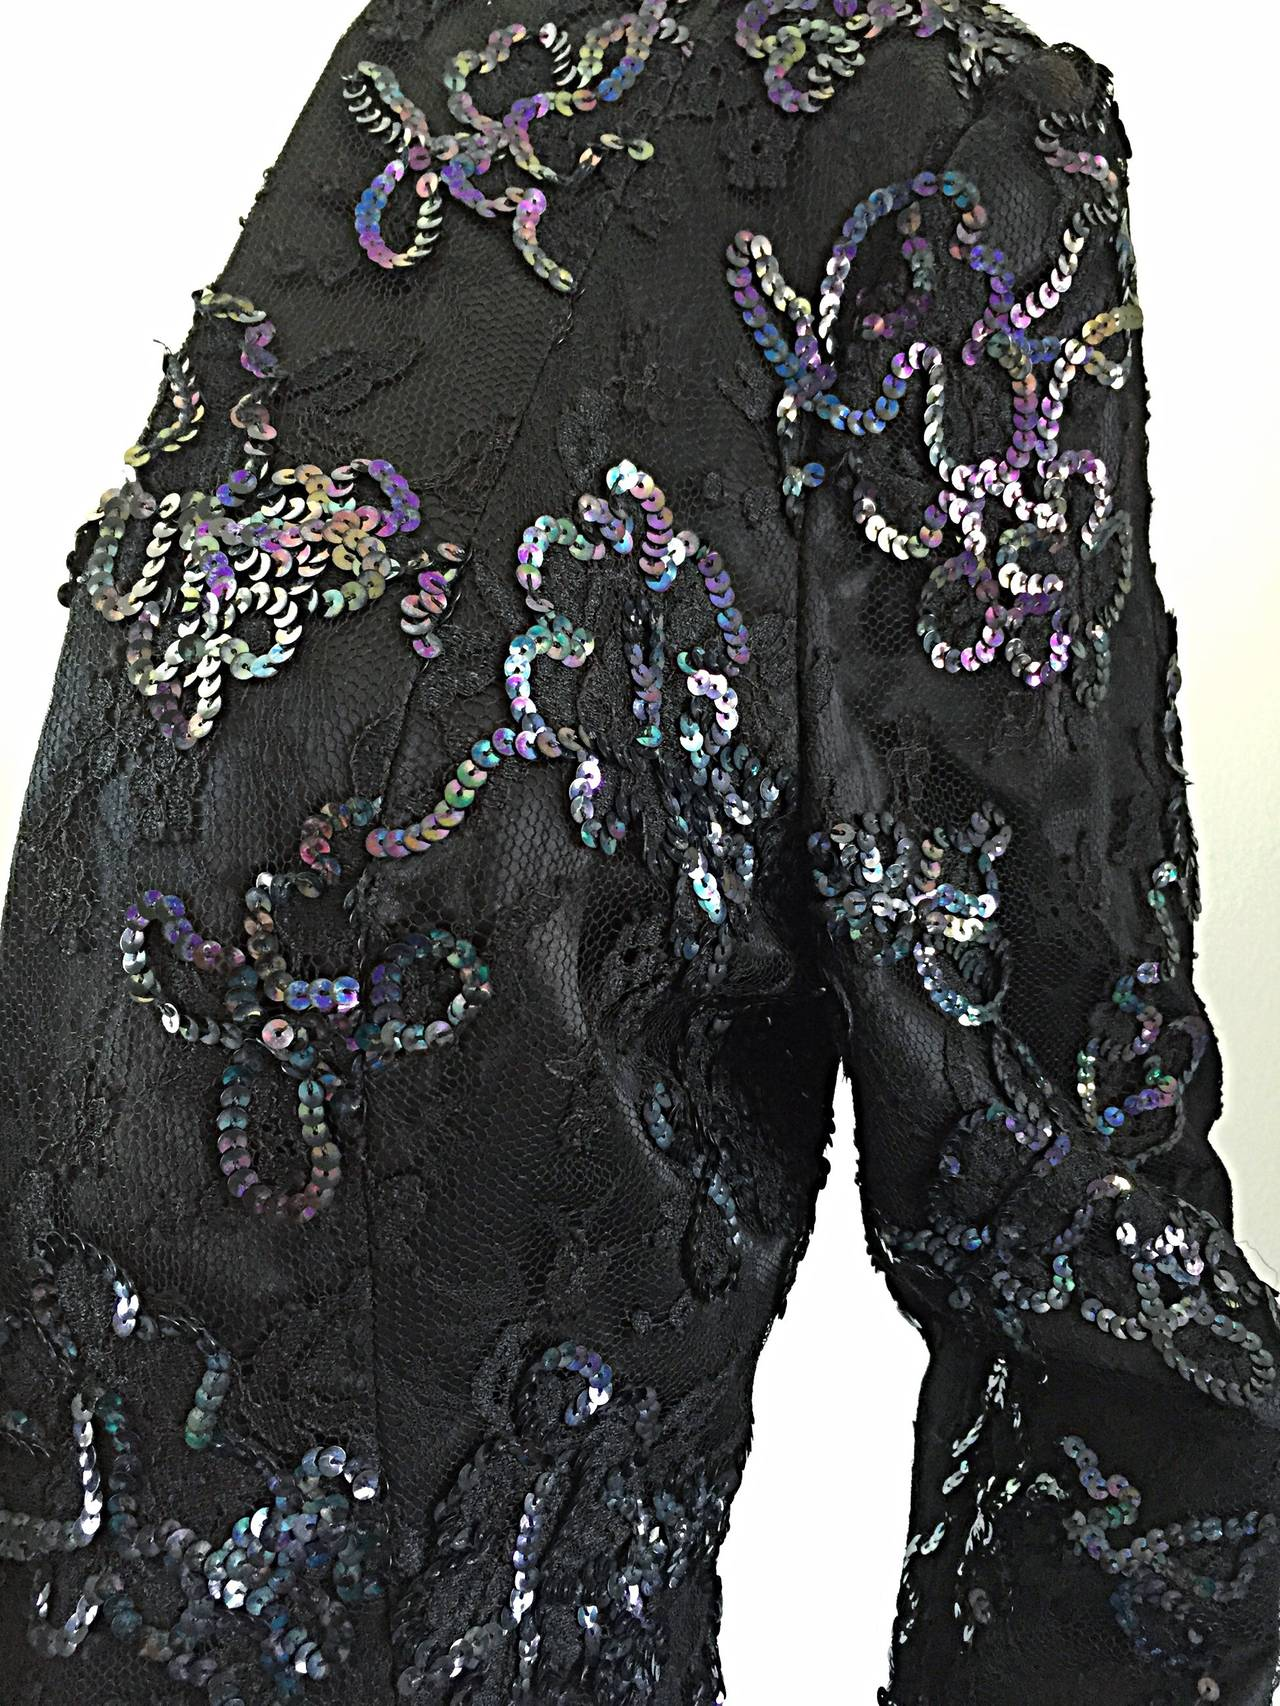 Beautiful Vintage Joanna Mastroianni Sequins and Lace Black Blazer Jacket For Sale 3